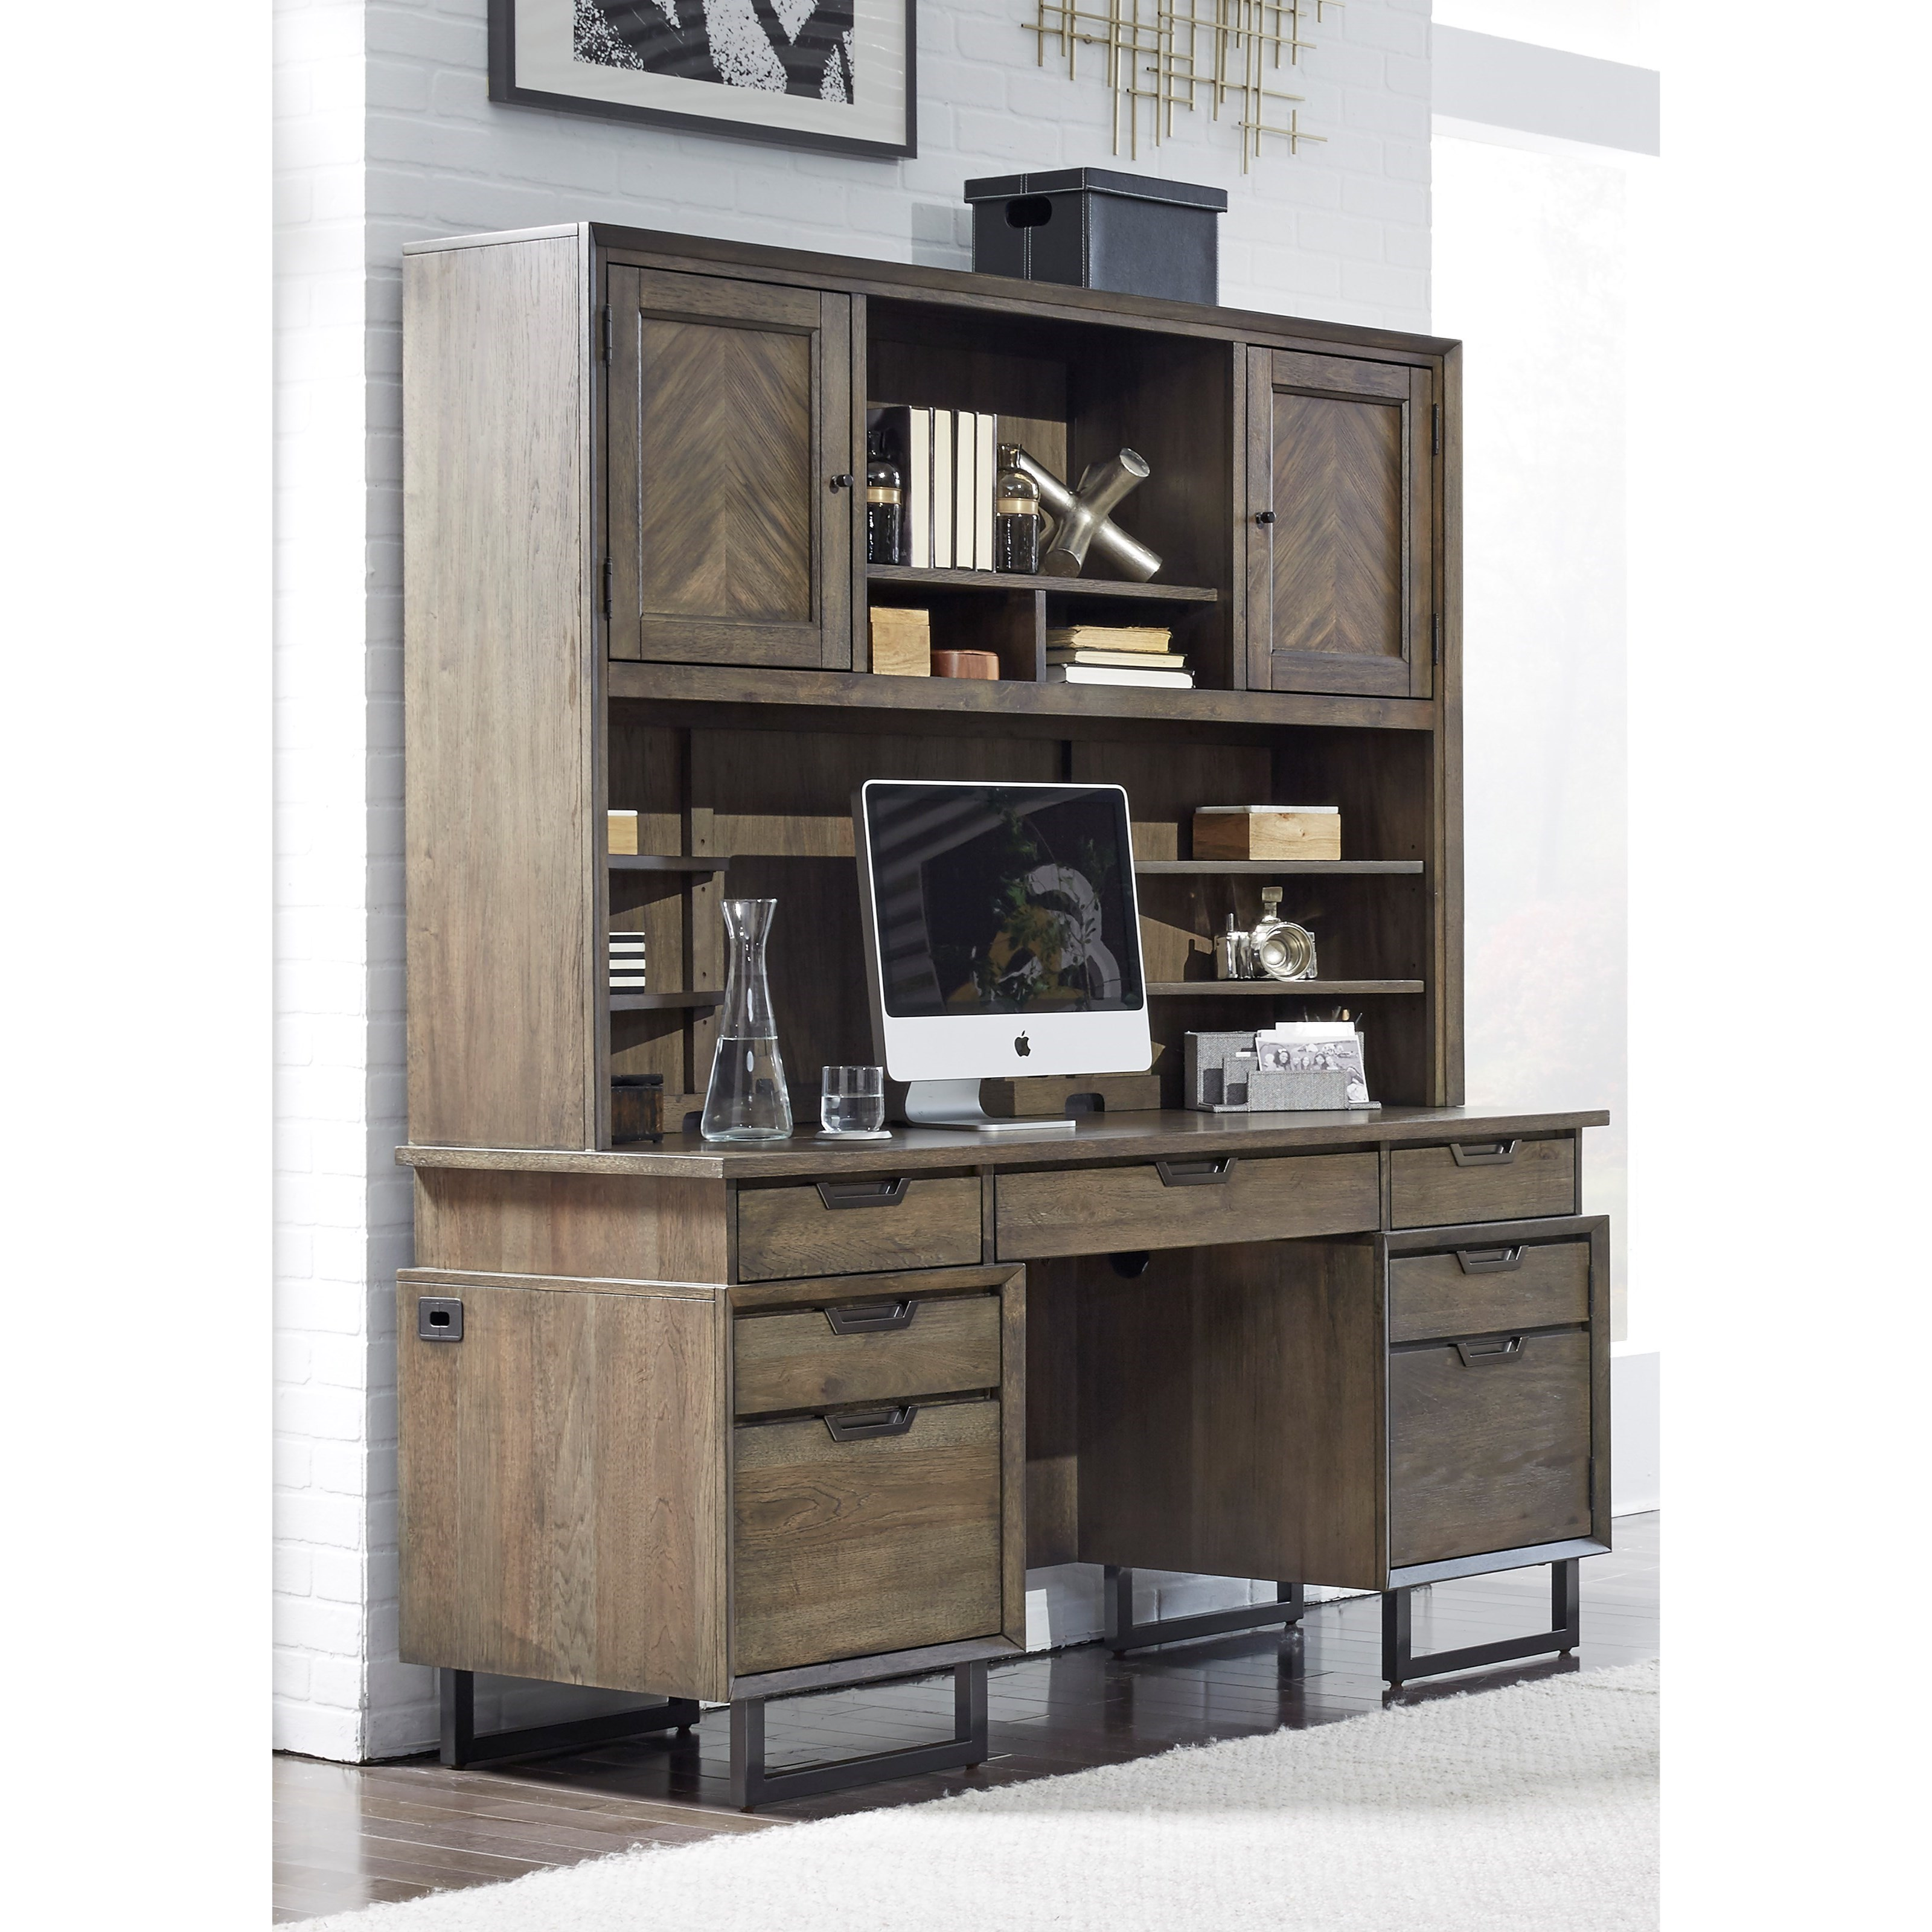 Harper Point Desk and Hutch by Aspenhome at Baer's Furniture